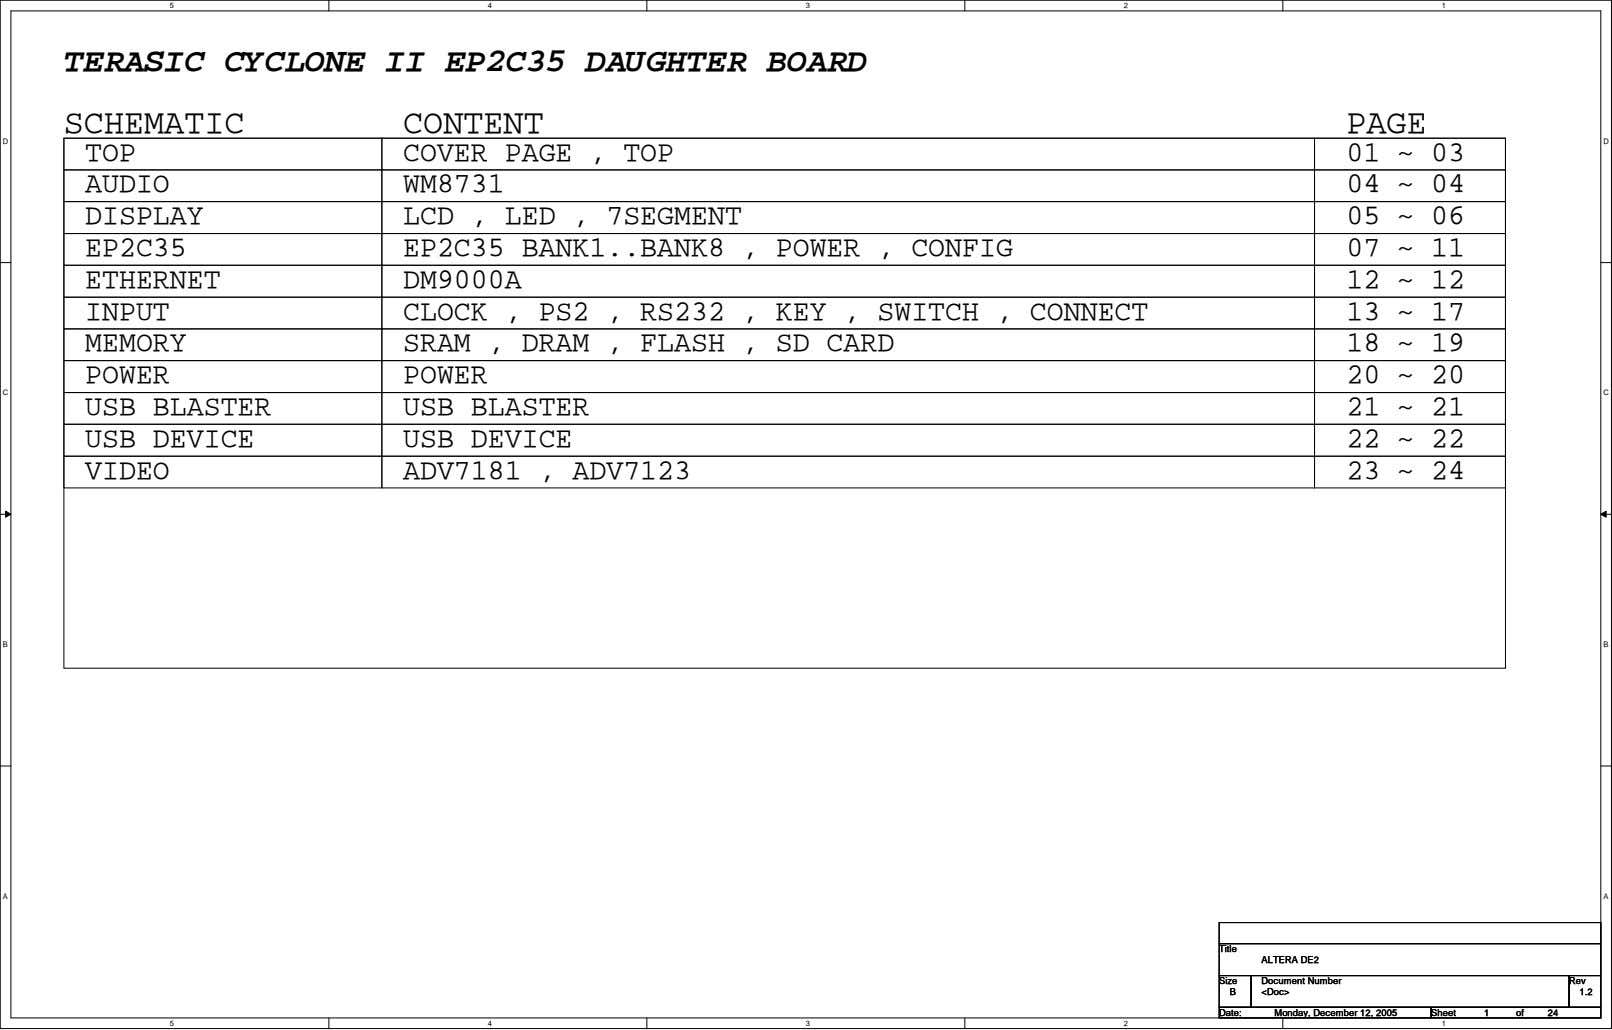 5 4 3 2 1 TERASIC CYCLONE II EP2C35 DAUGHTER BOARD SCHEMATIC CONTENT PAGE D